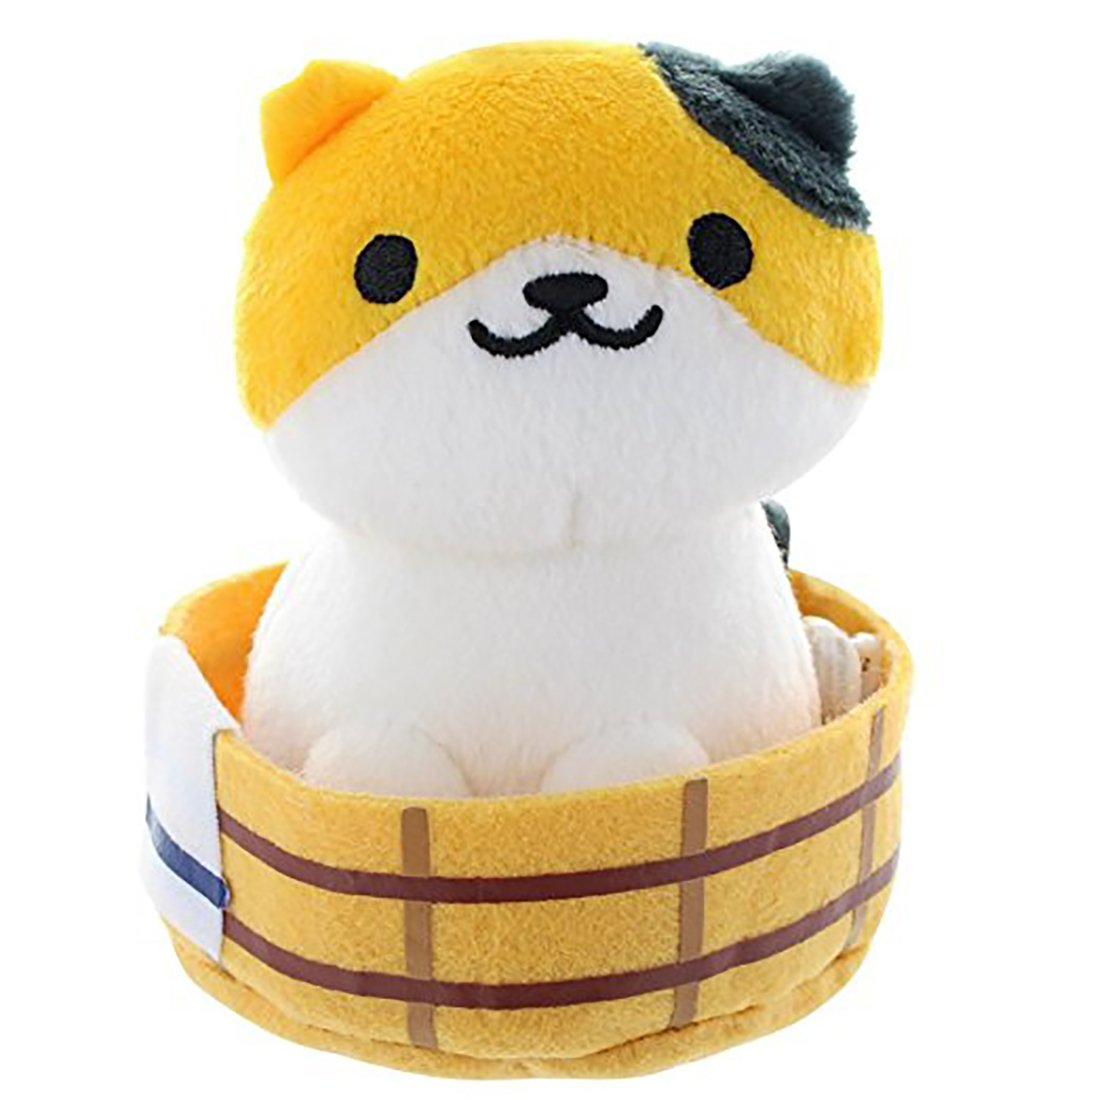 Neko Atsume ねこあつめ Callie Wood Pail Small Plush Toy with Bed Japan Special 6'' Vol 11 by Nekoatsume